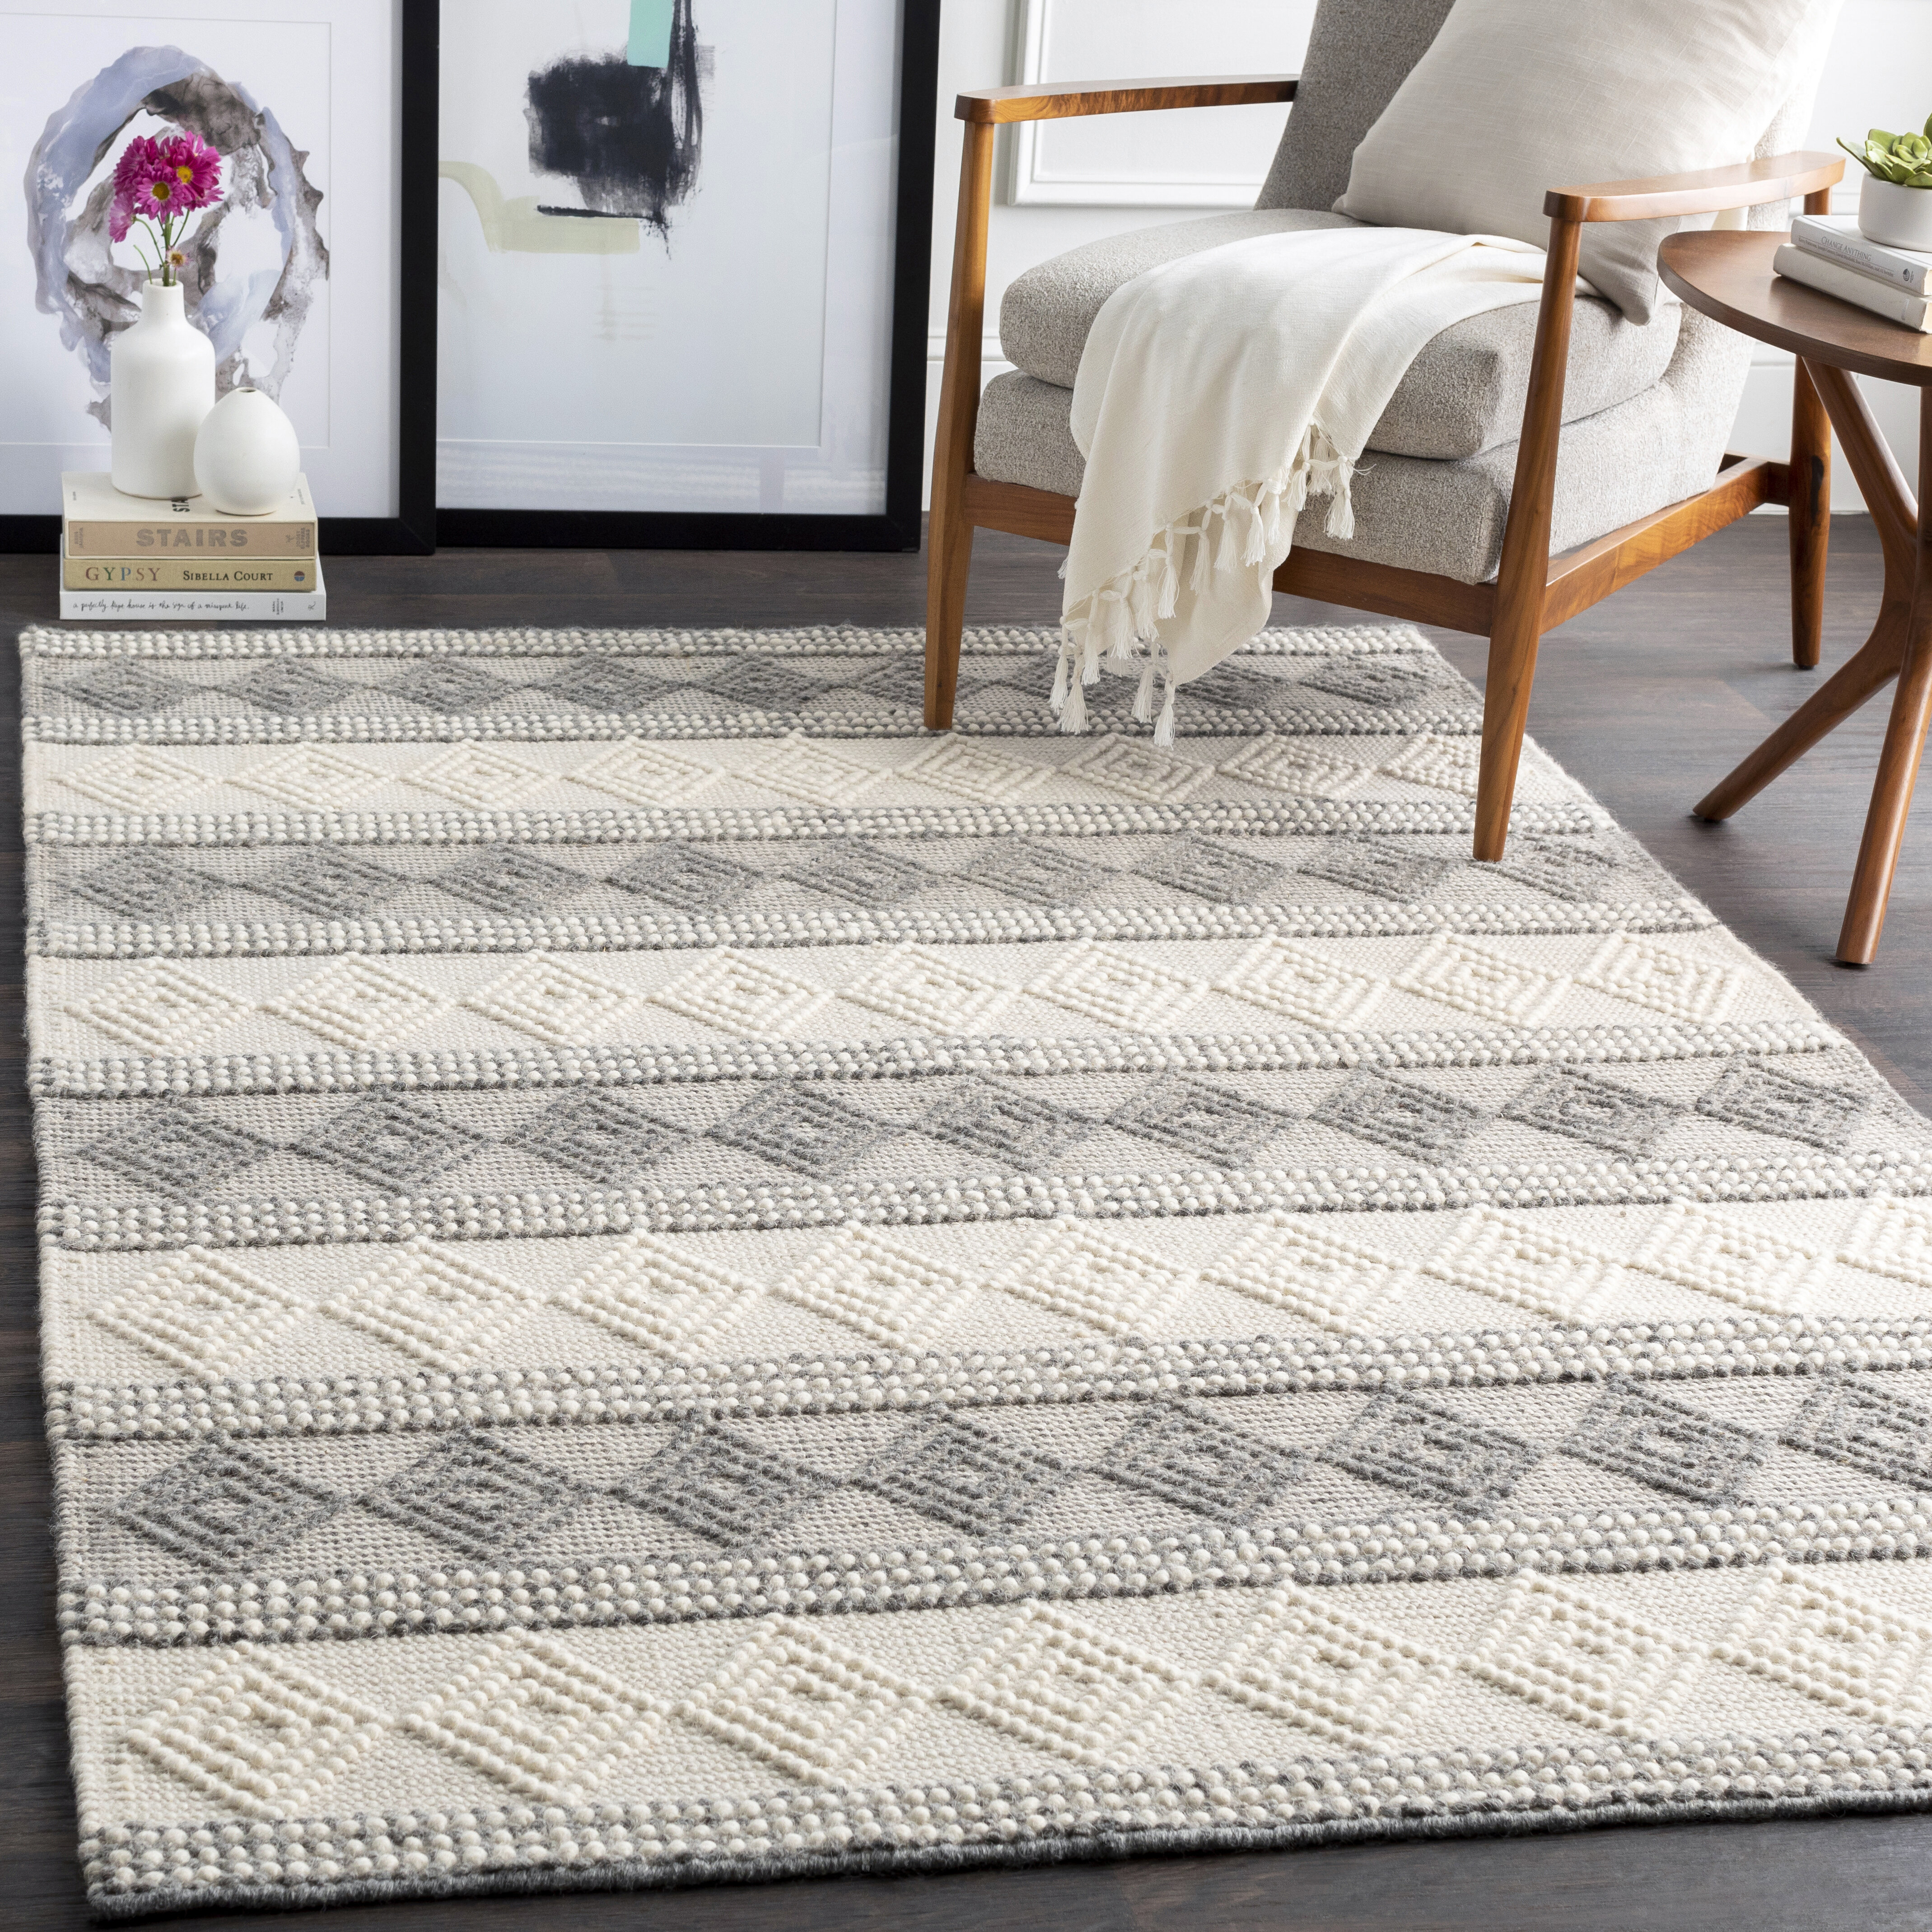 Union Rustic Clancy Handwoven Wool Beige Gray Cream Rug Wayfair